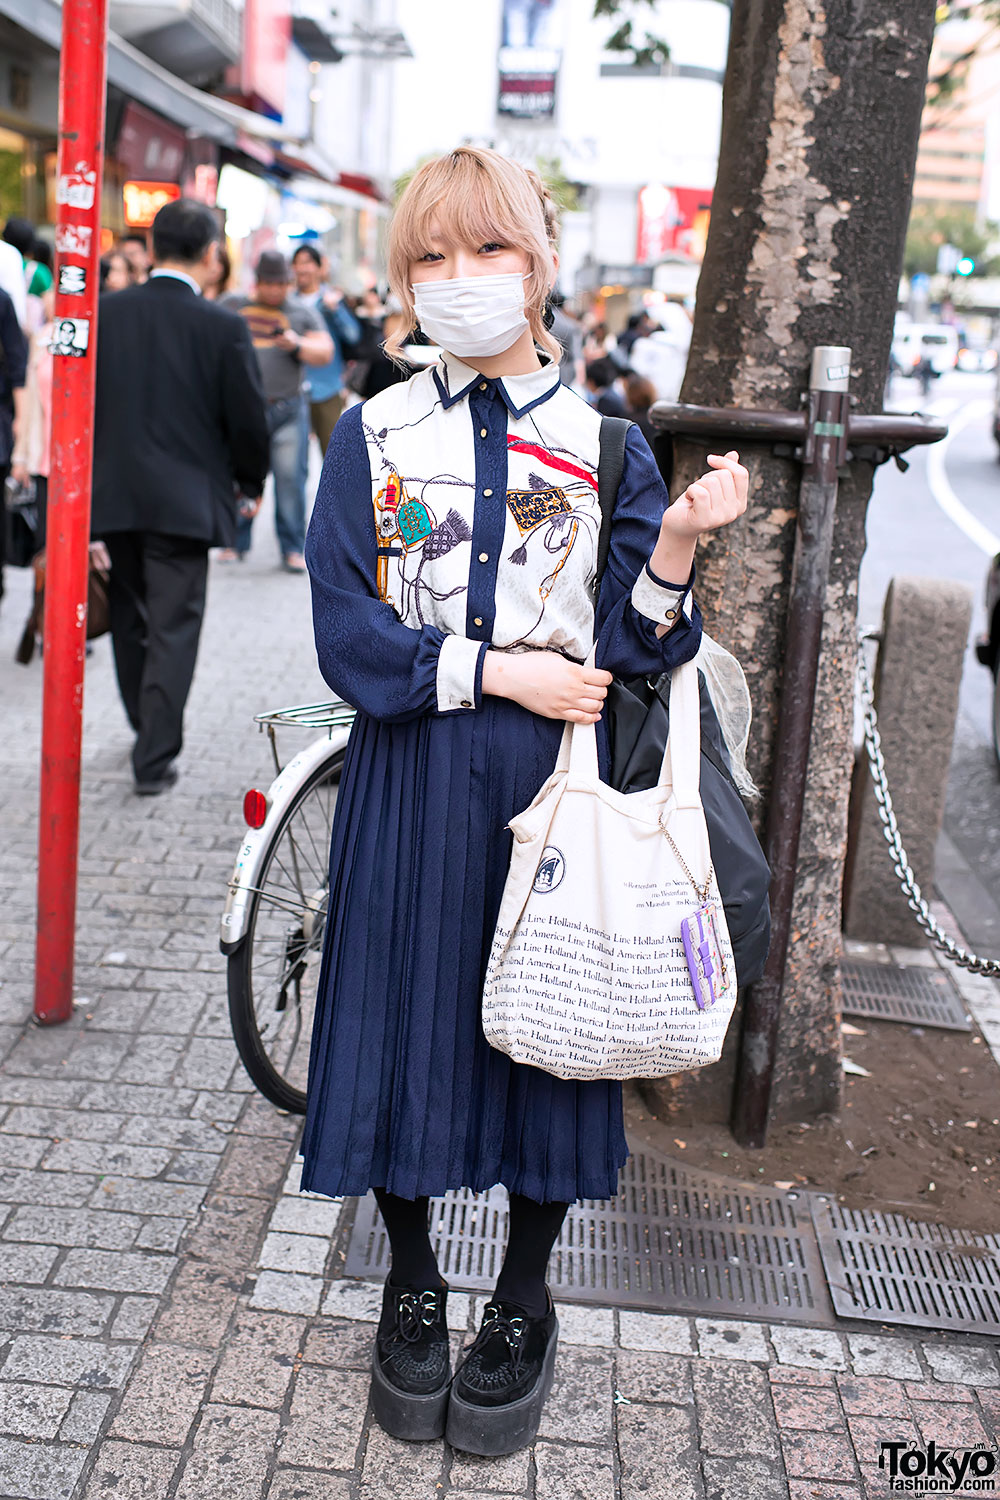 Long Pleated Skirt in Shibuya